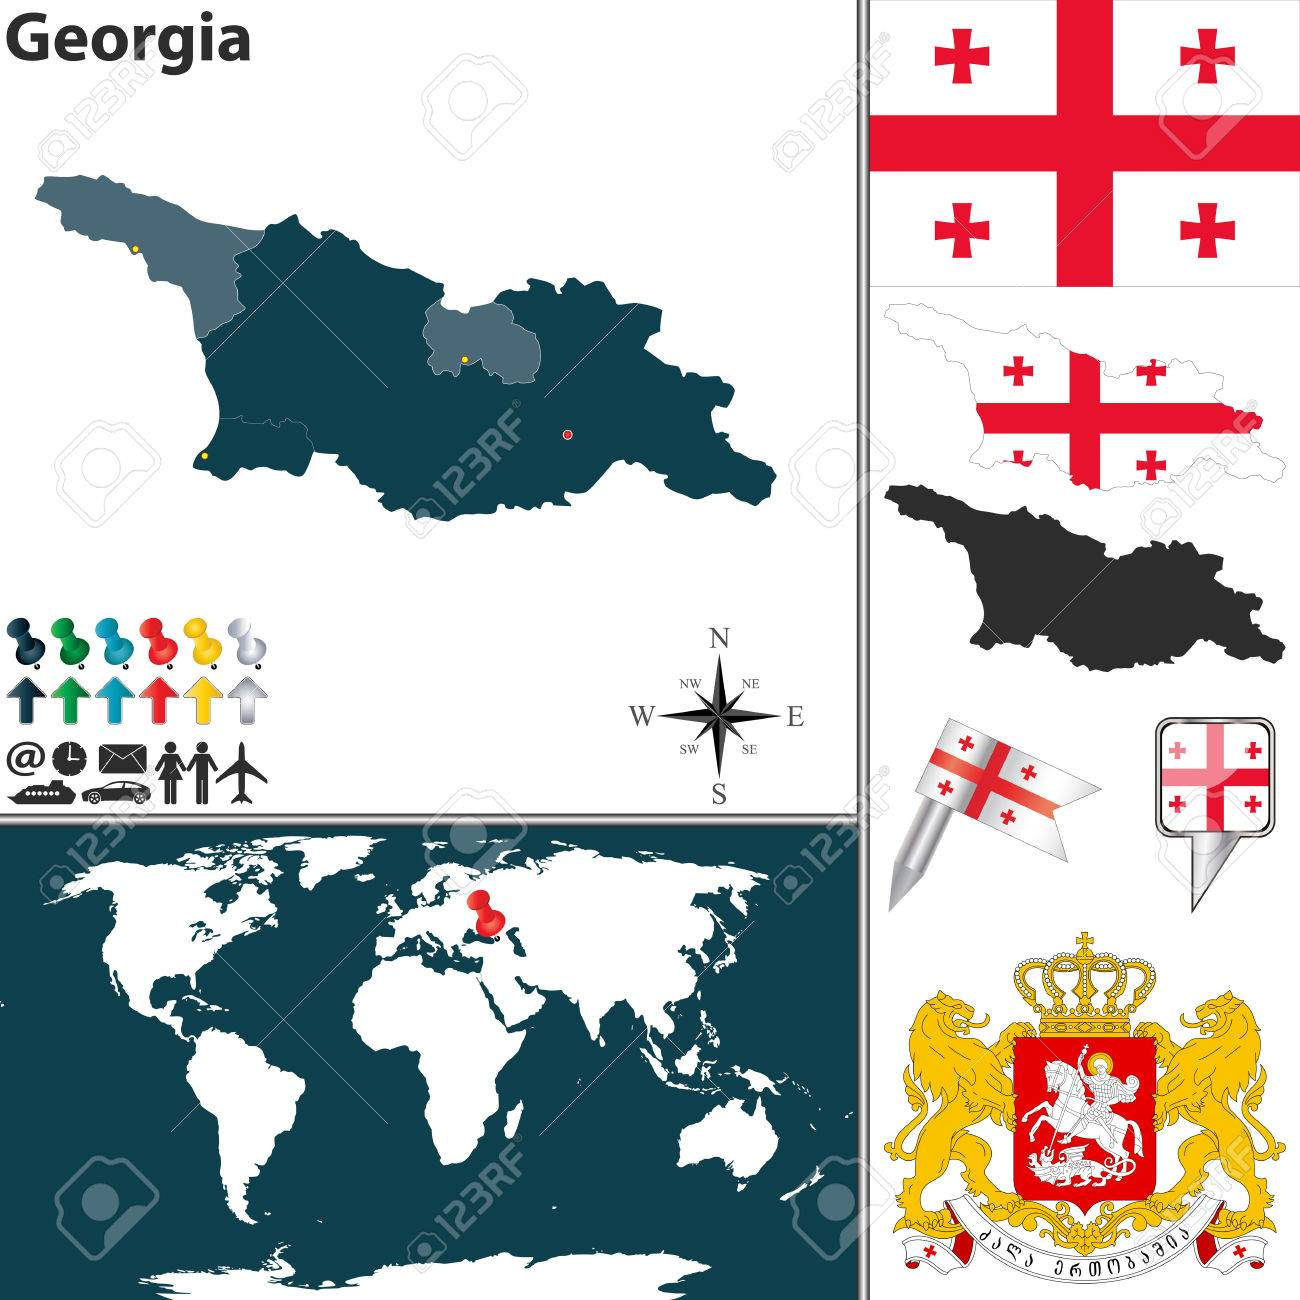 map of Georgia with regions, coat of arms and location on world..